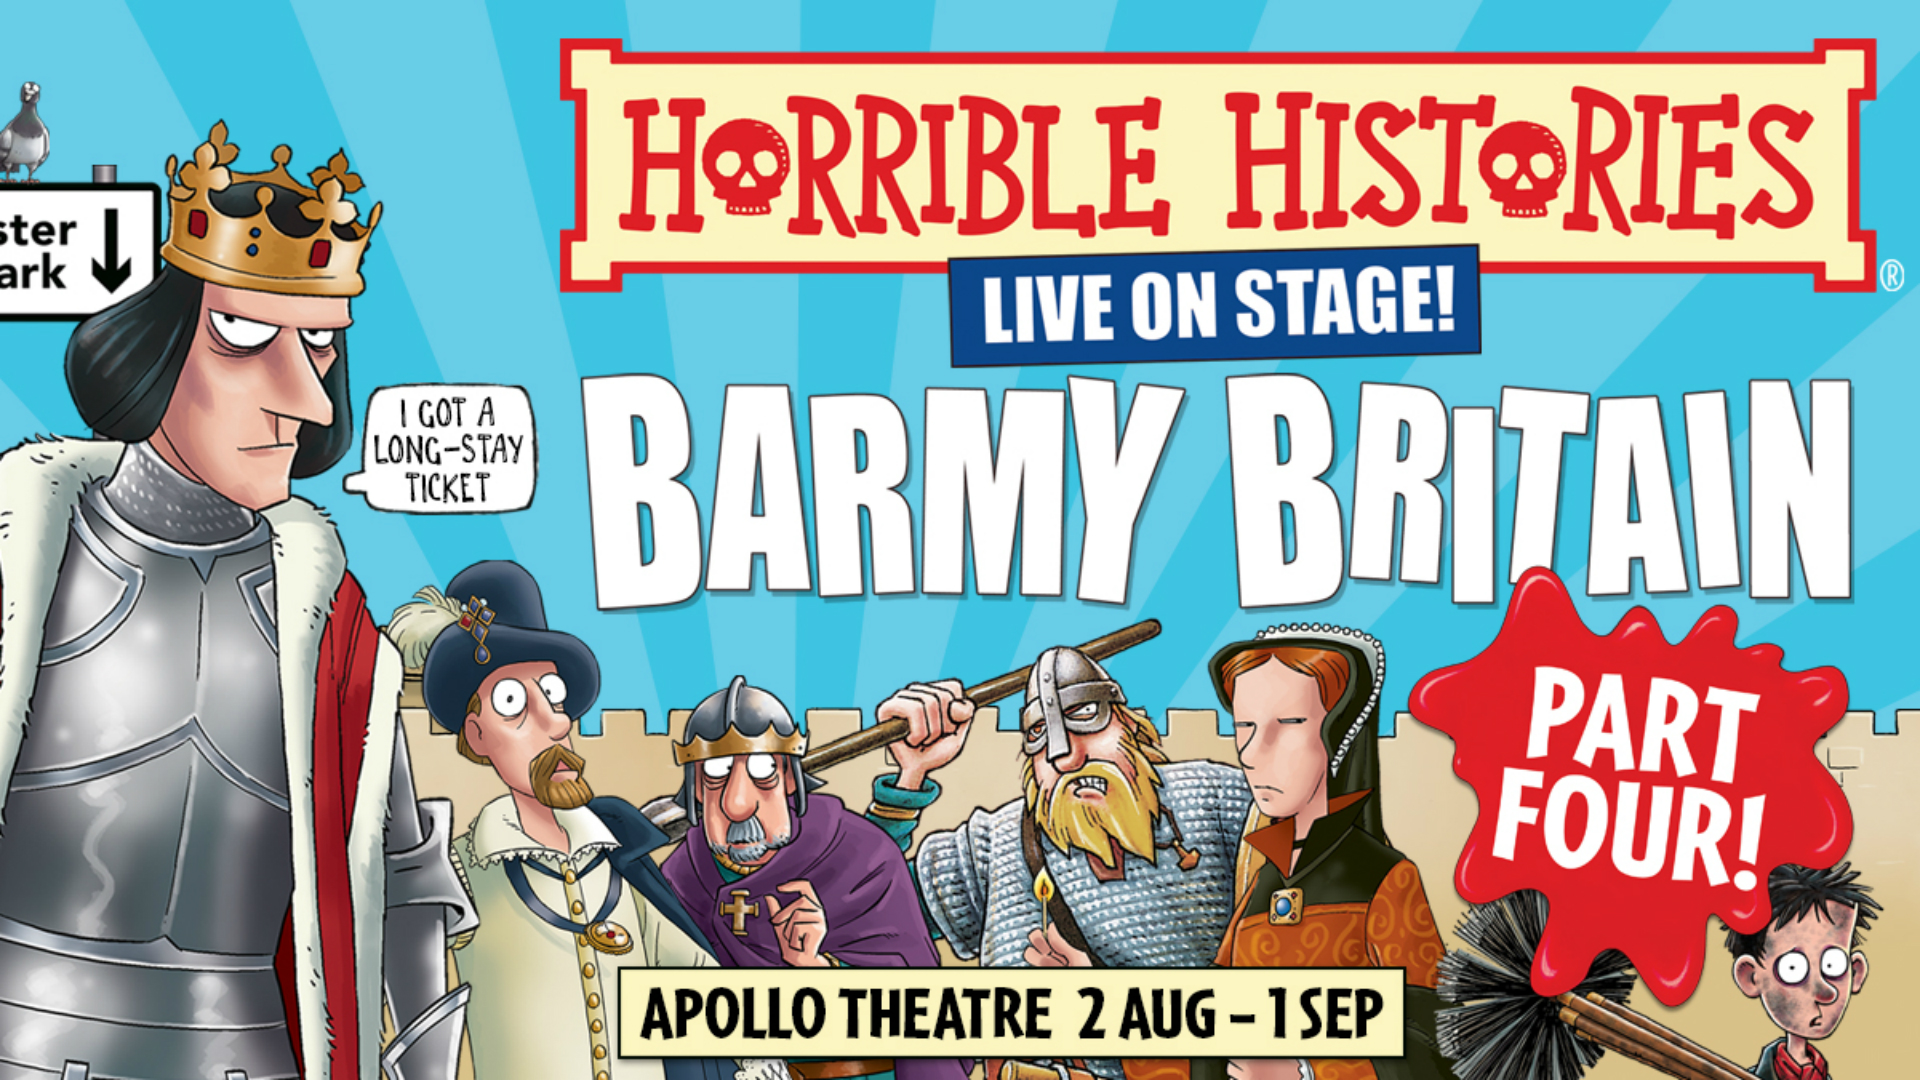 Horrible Histories Live On Stage - Barmy Britain Part Four! at Apollo Theatre. Image courtesy of Kate Morley PR.